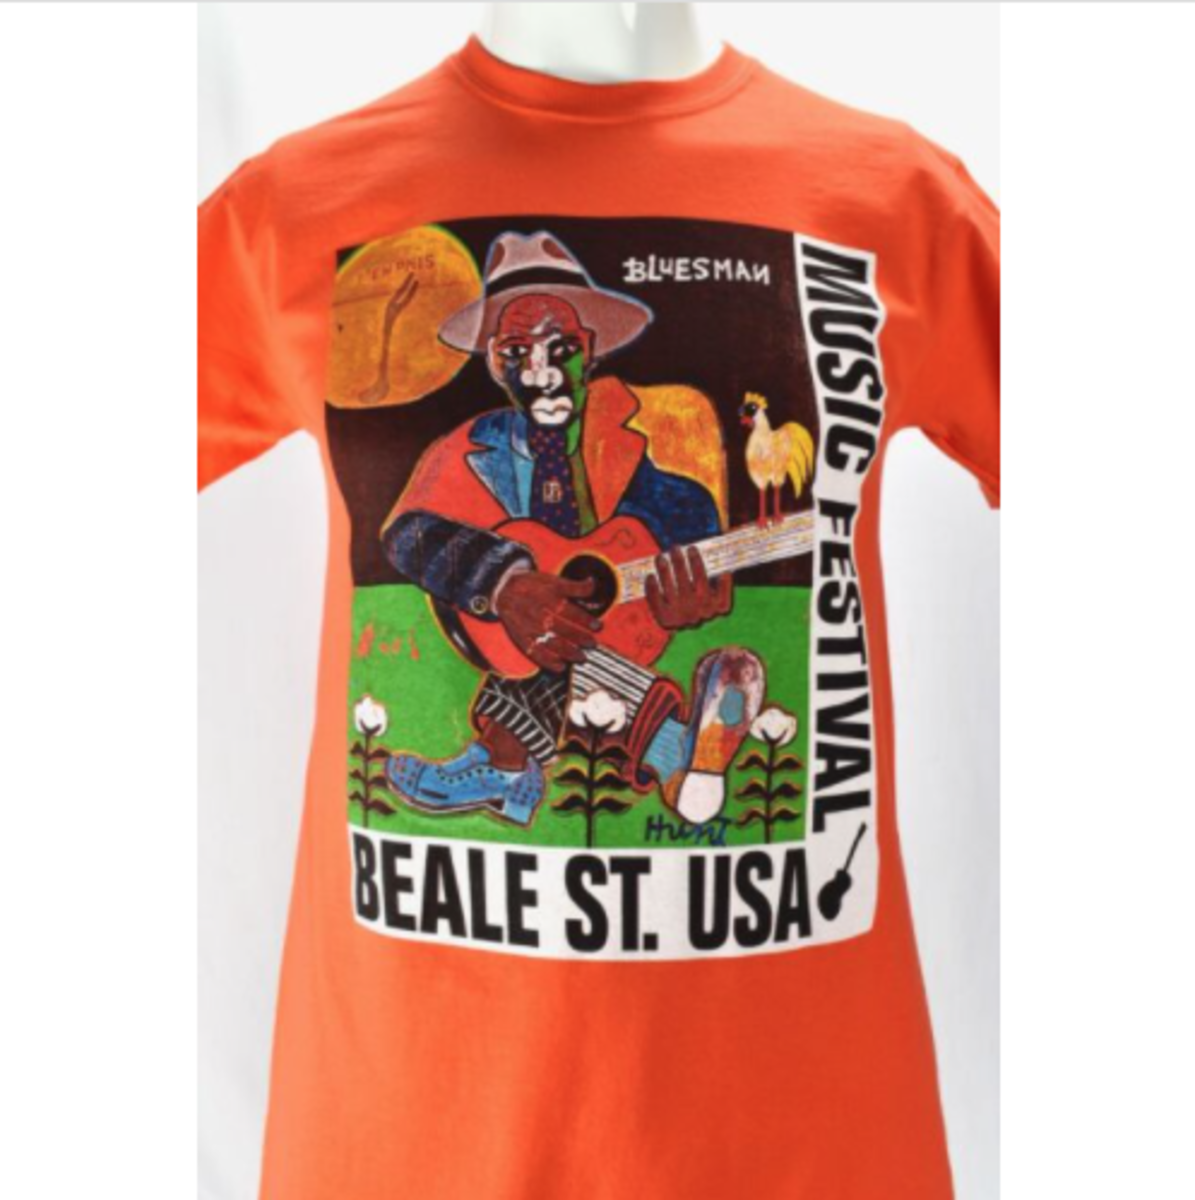 The paintings of George Hunt have graced the surface of many T-shirts. They have also been the artwork for the official poster of the Memphis in May Beale Street Music Festival.